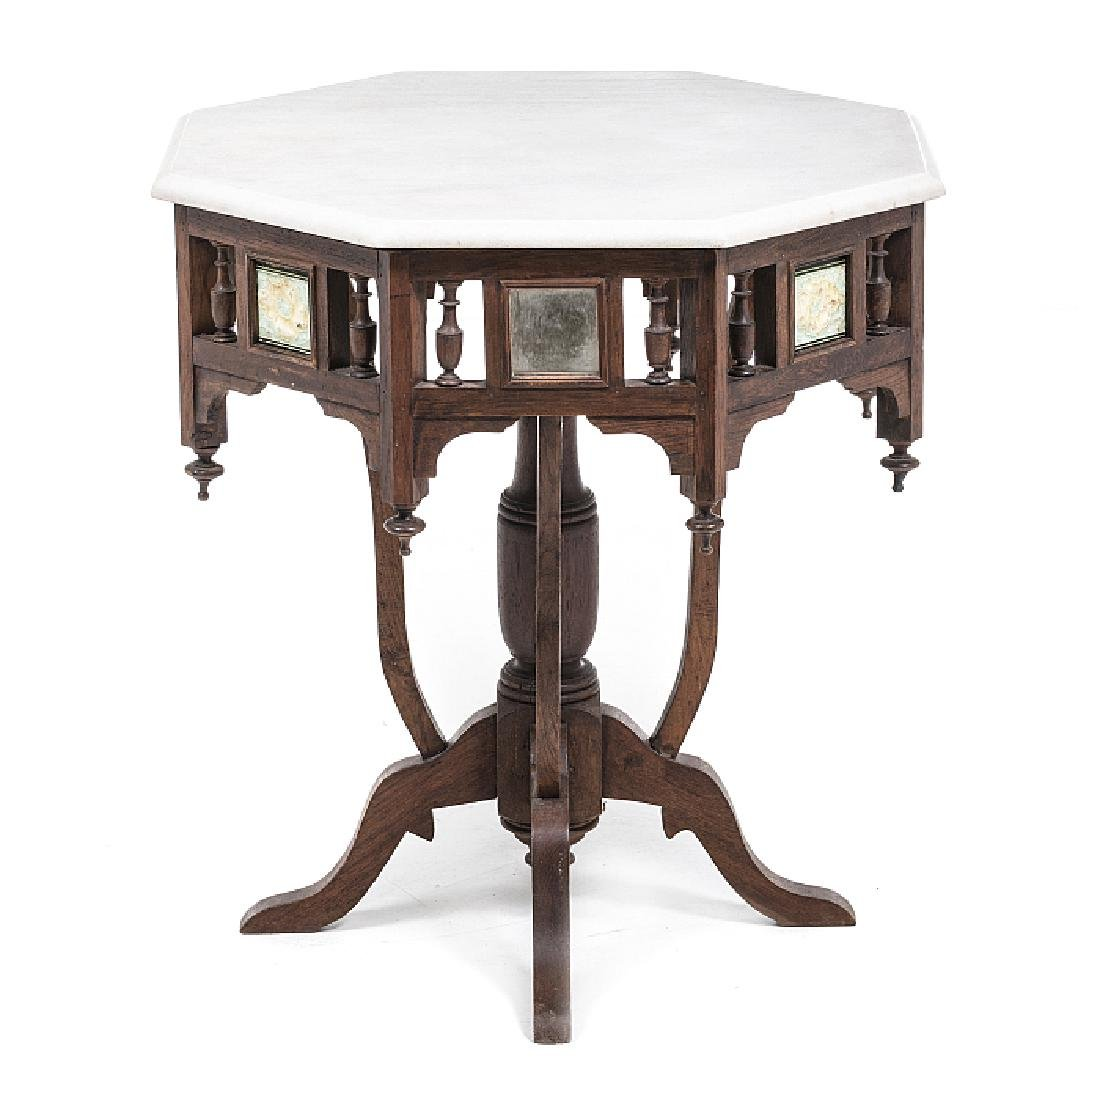 Support table, Art Nouveau